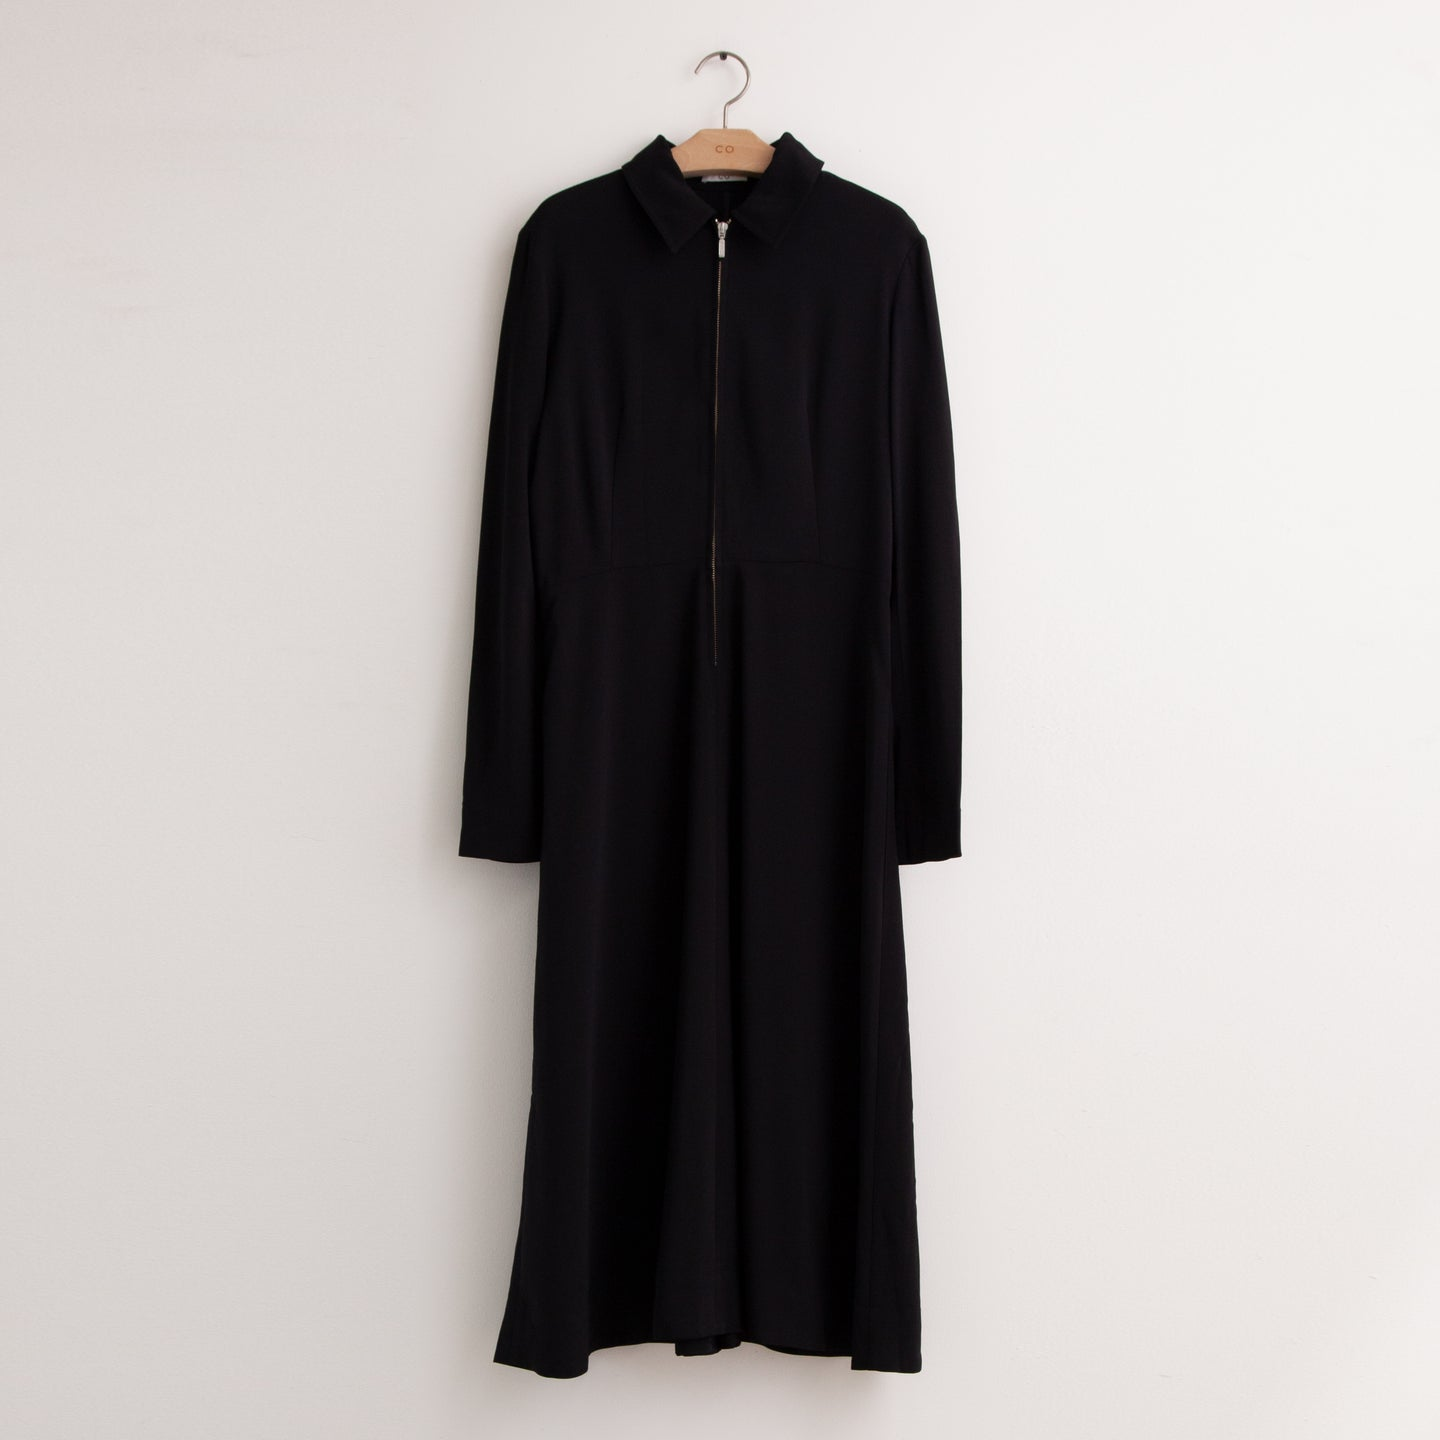 Zip front long sleeve collared dress in black stretch crepe - CO